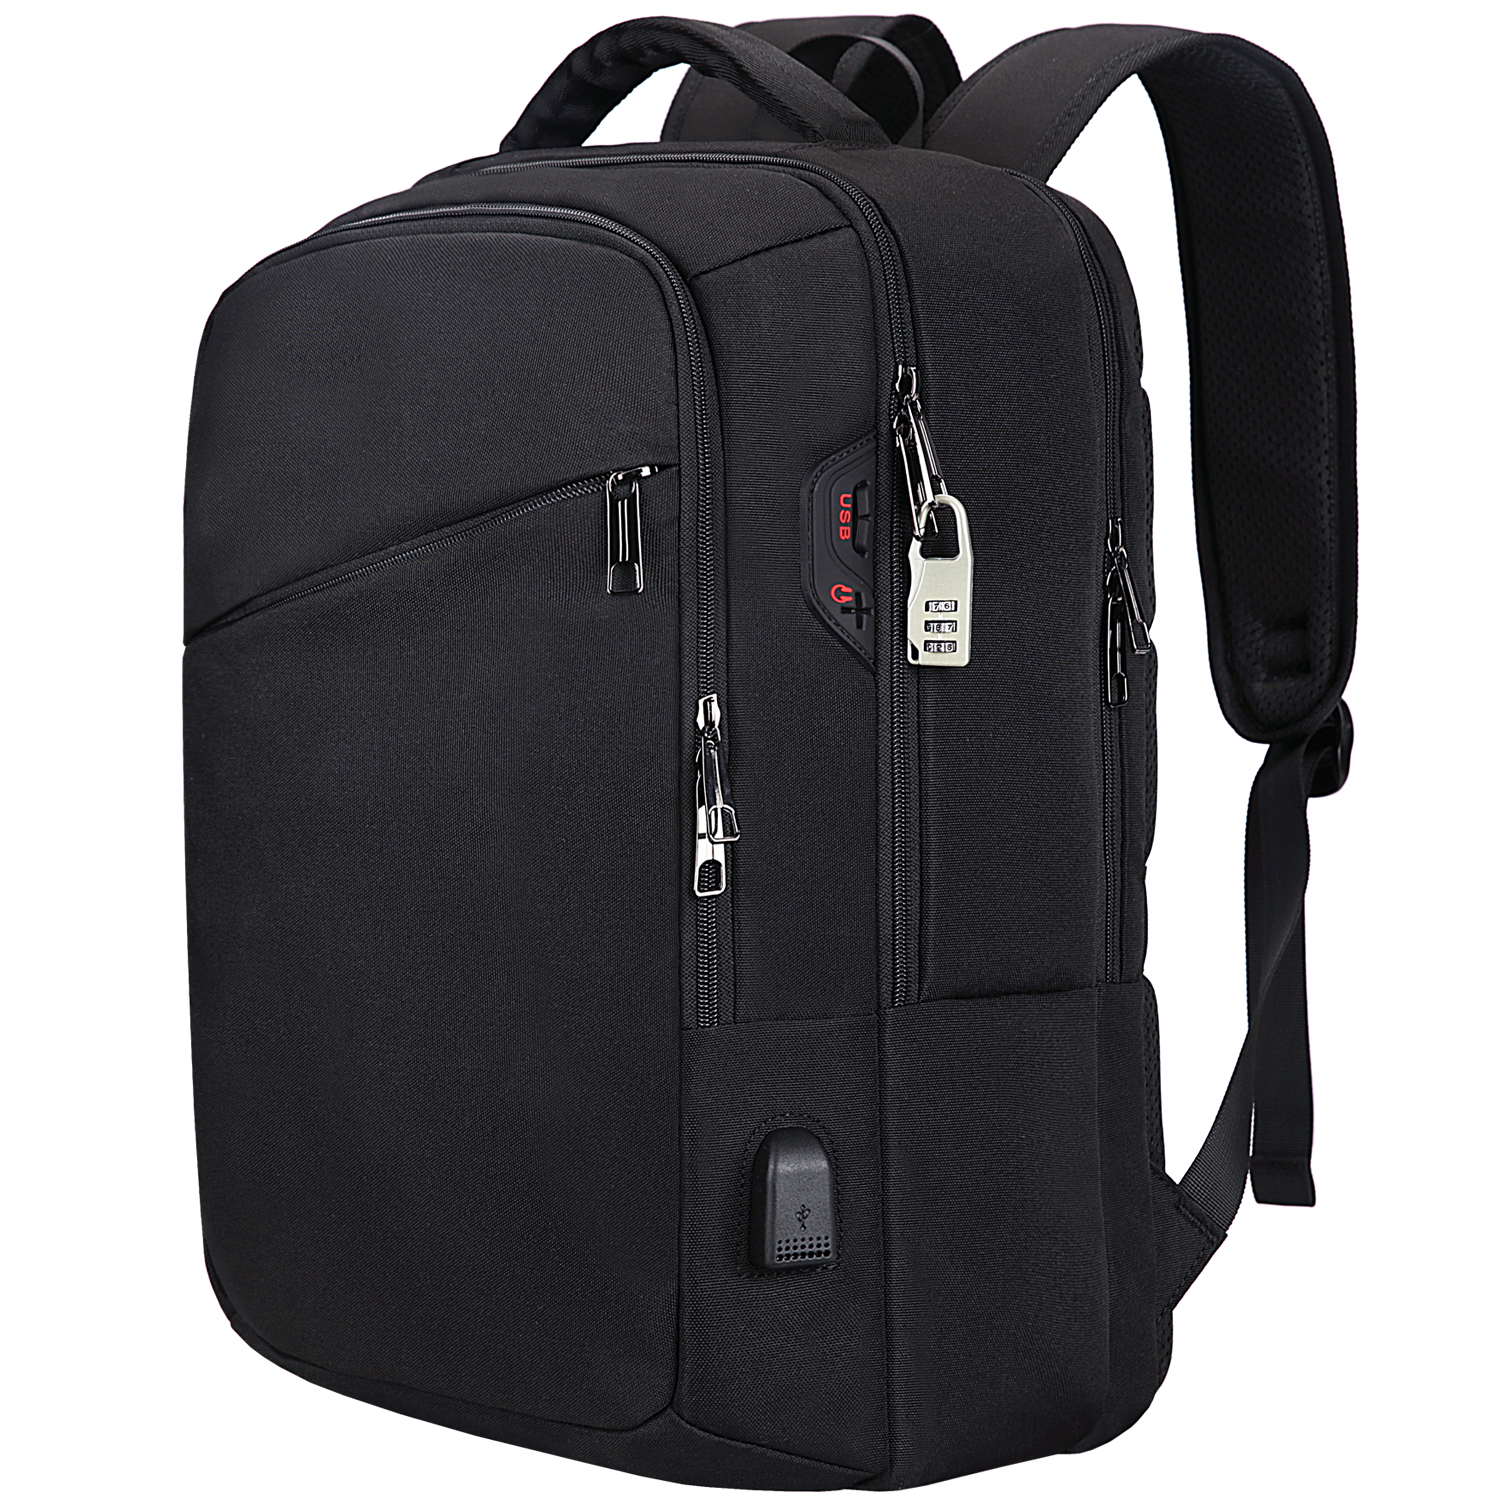 New Design Trending USB Charging Laptop Backpack Bags for Men Women Anti Theft School Bags